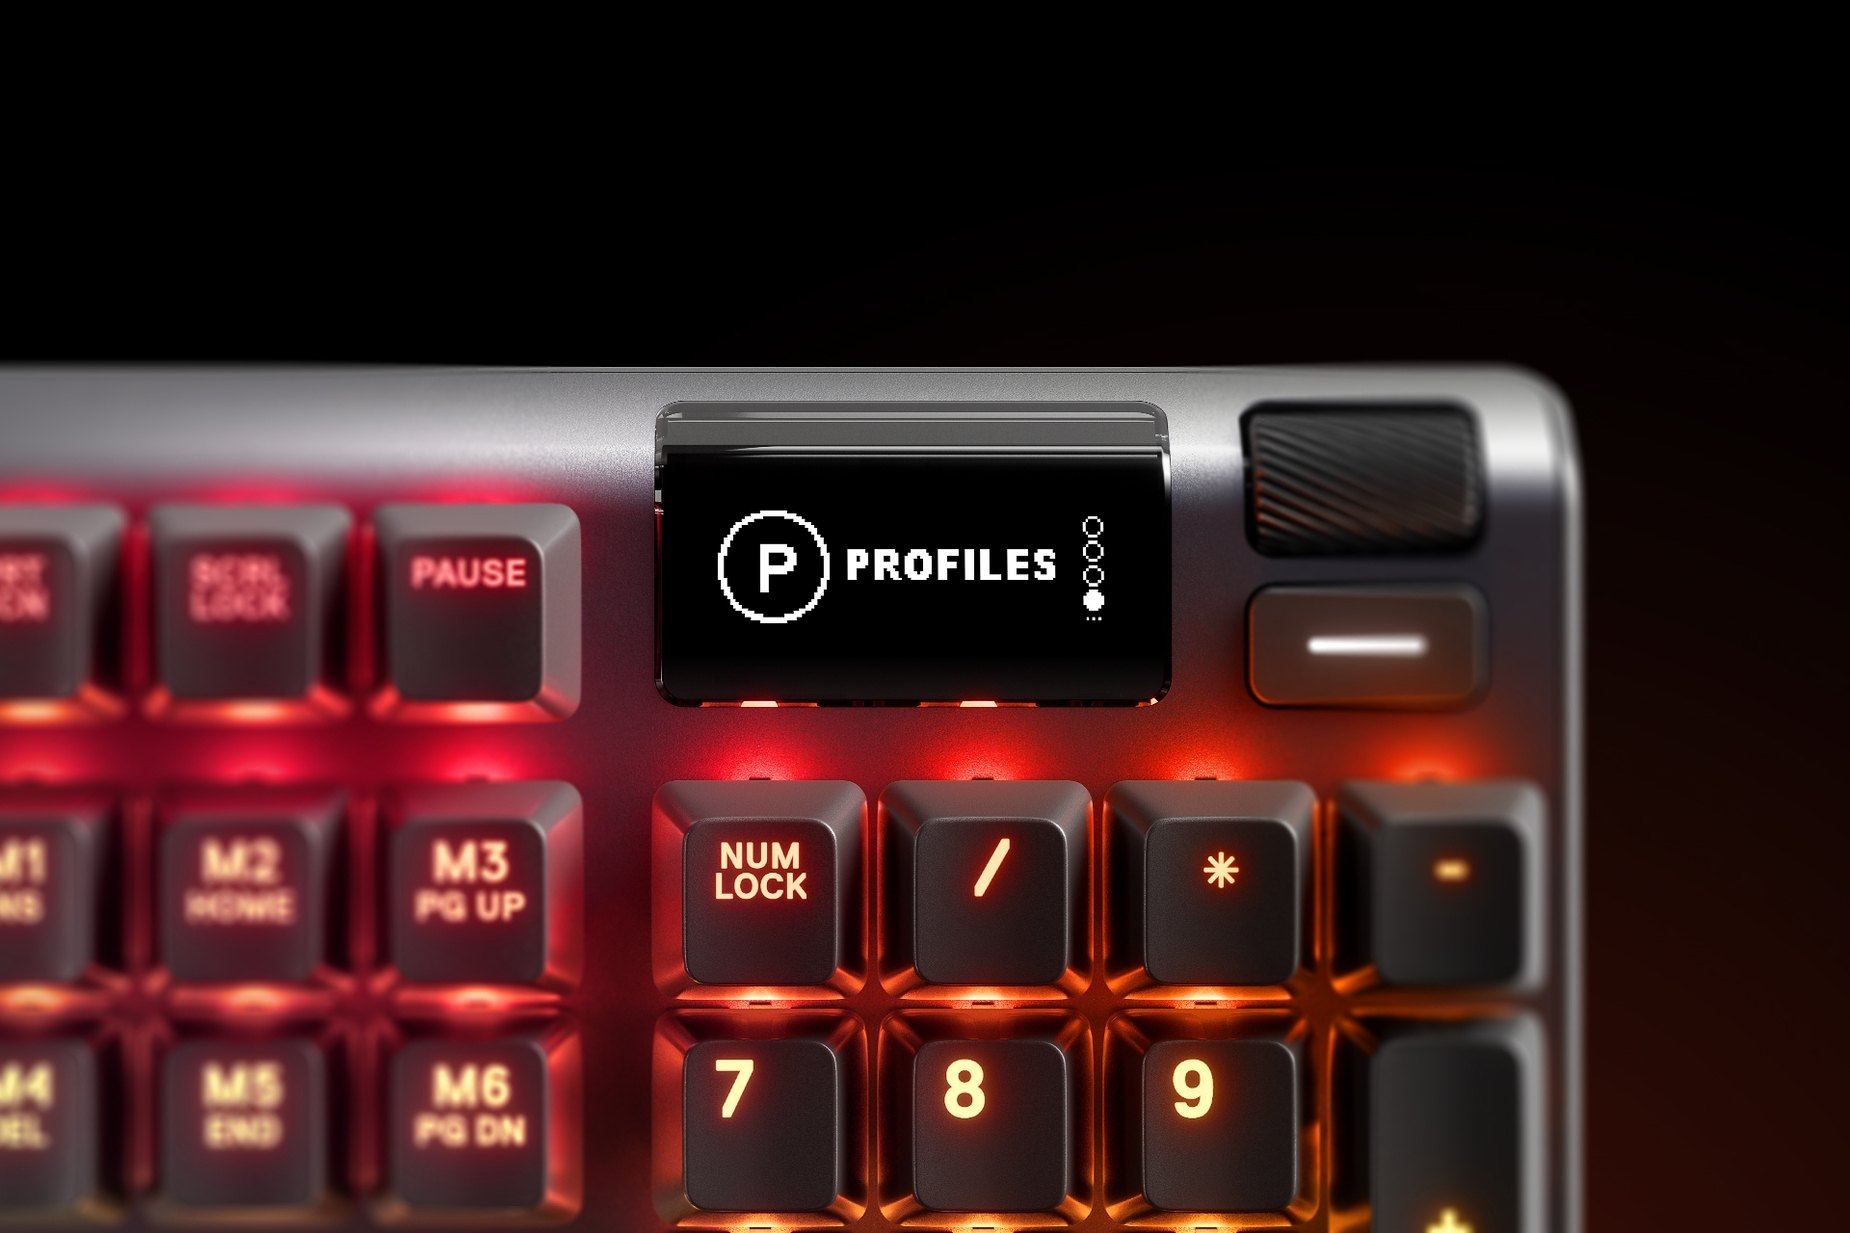 Zoomed in view of the multimedia and settings controls/volume roller on the Korean - Apex Pro gaming keyboard